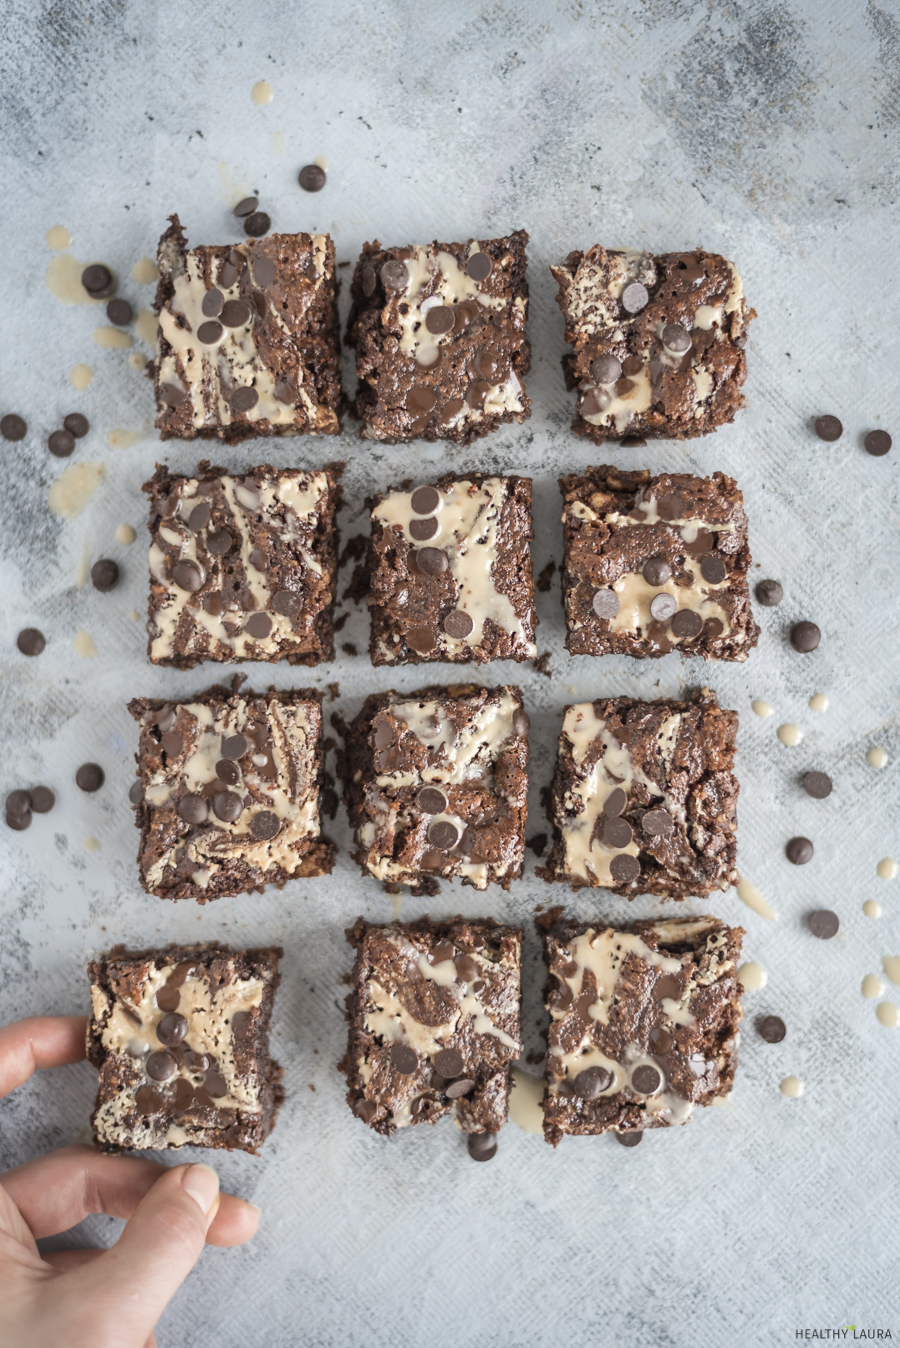 Gluten Free Paleo Tahini Brownies Recipe by Healthy Laura Food Photography. HealthyLaura @healthylauracom chocolate dairy free healthy marble brownies with tahini and chocolate chips. It's an easy dairy free recipes vegan, quick healthy no bake vegan, easy paleo brownie, gluten-free, grain free sweet treat with honey or maple syrup. #paleobrownies #tahinibrownies #marblebrownies #flourlessbrownies #healthybrownies